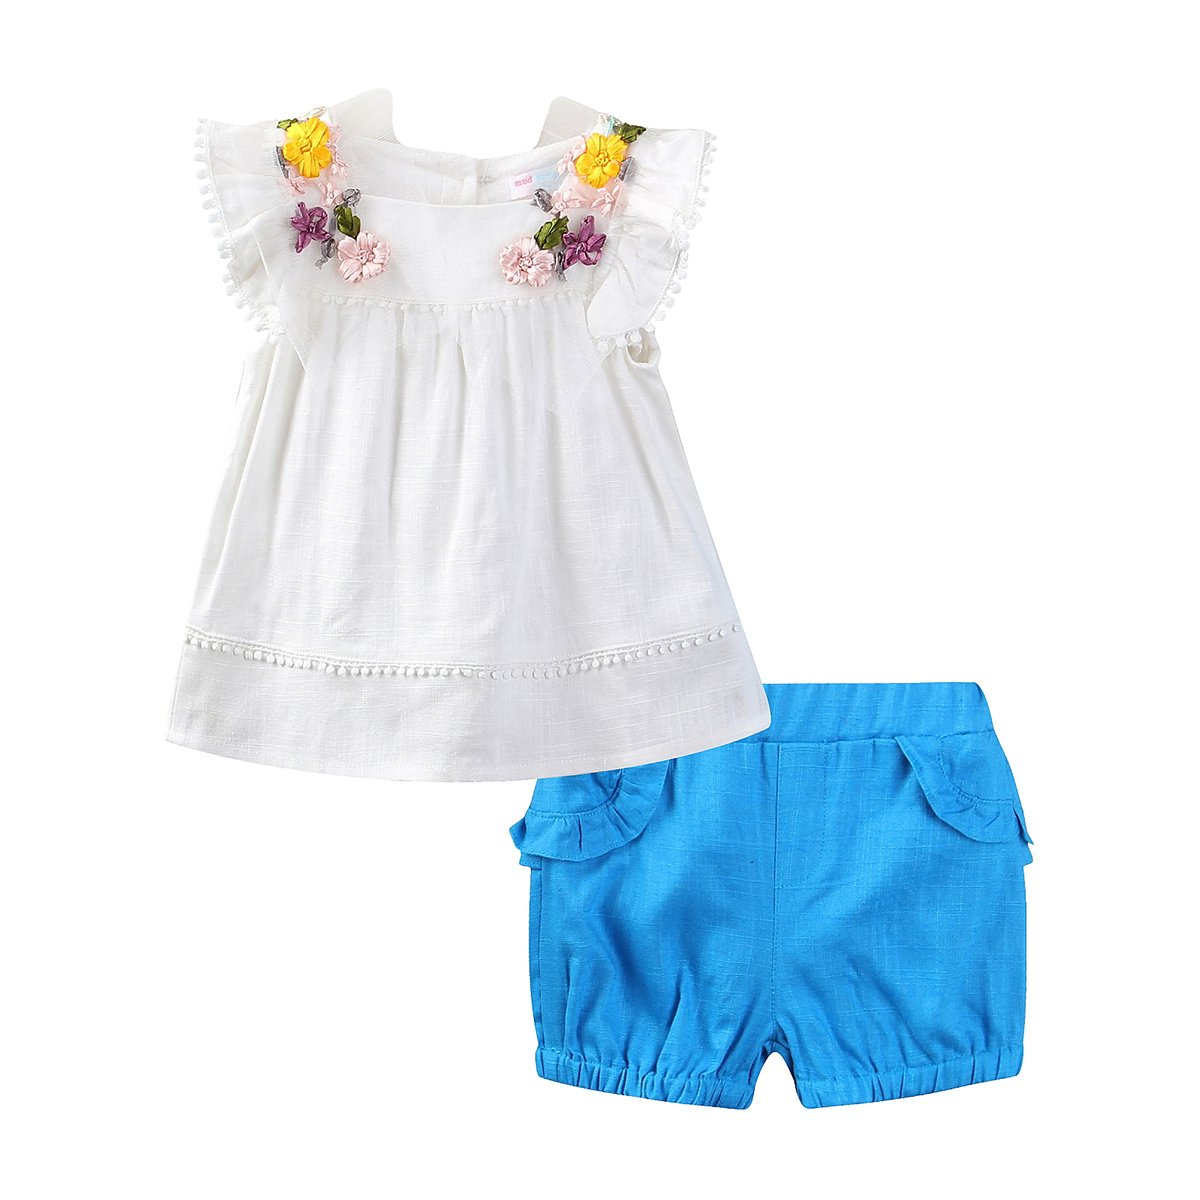 Mud Kingdom Flower Girls Outfits Butterfly Sleeve Shirt and Short Clothes Sets S-T0224